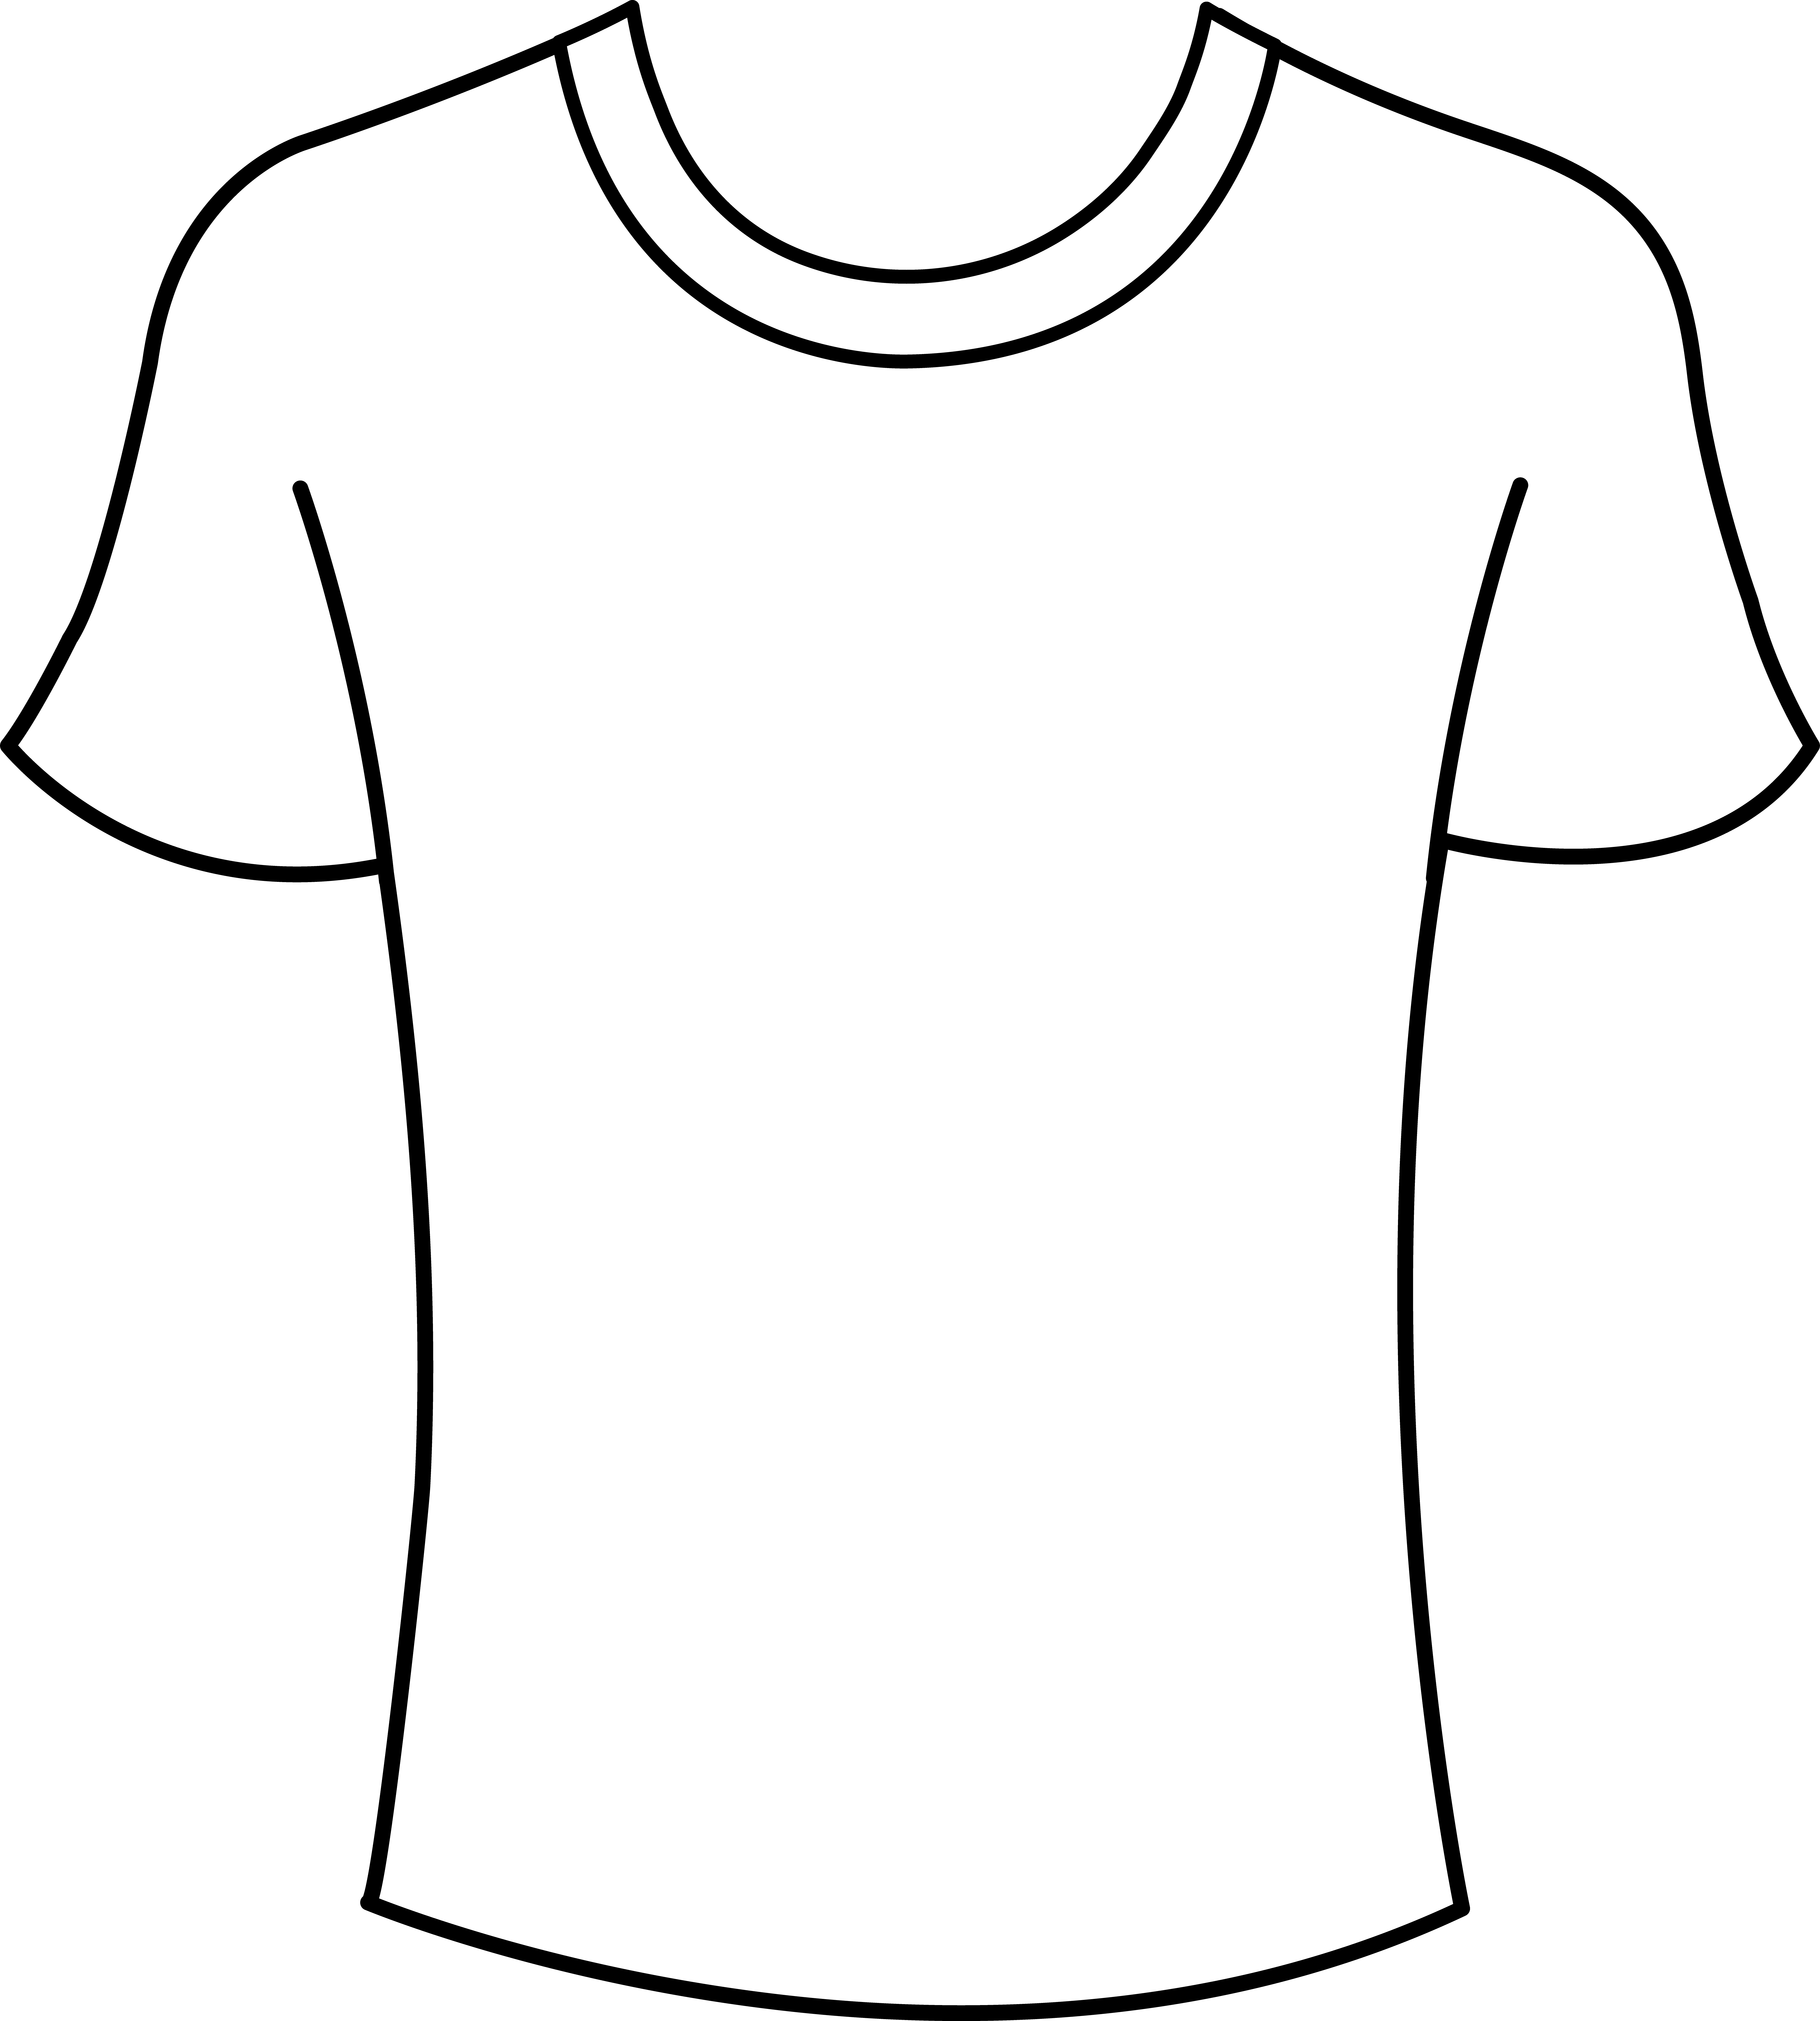 T shirt outline vector clipart best for Vector art for t shirts